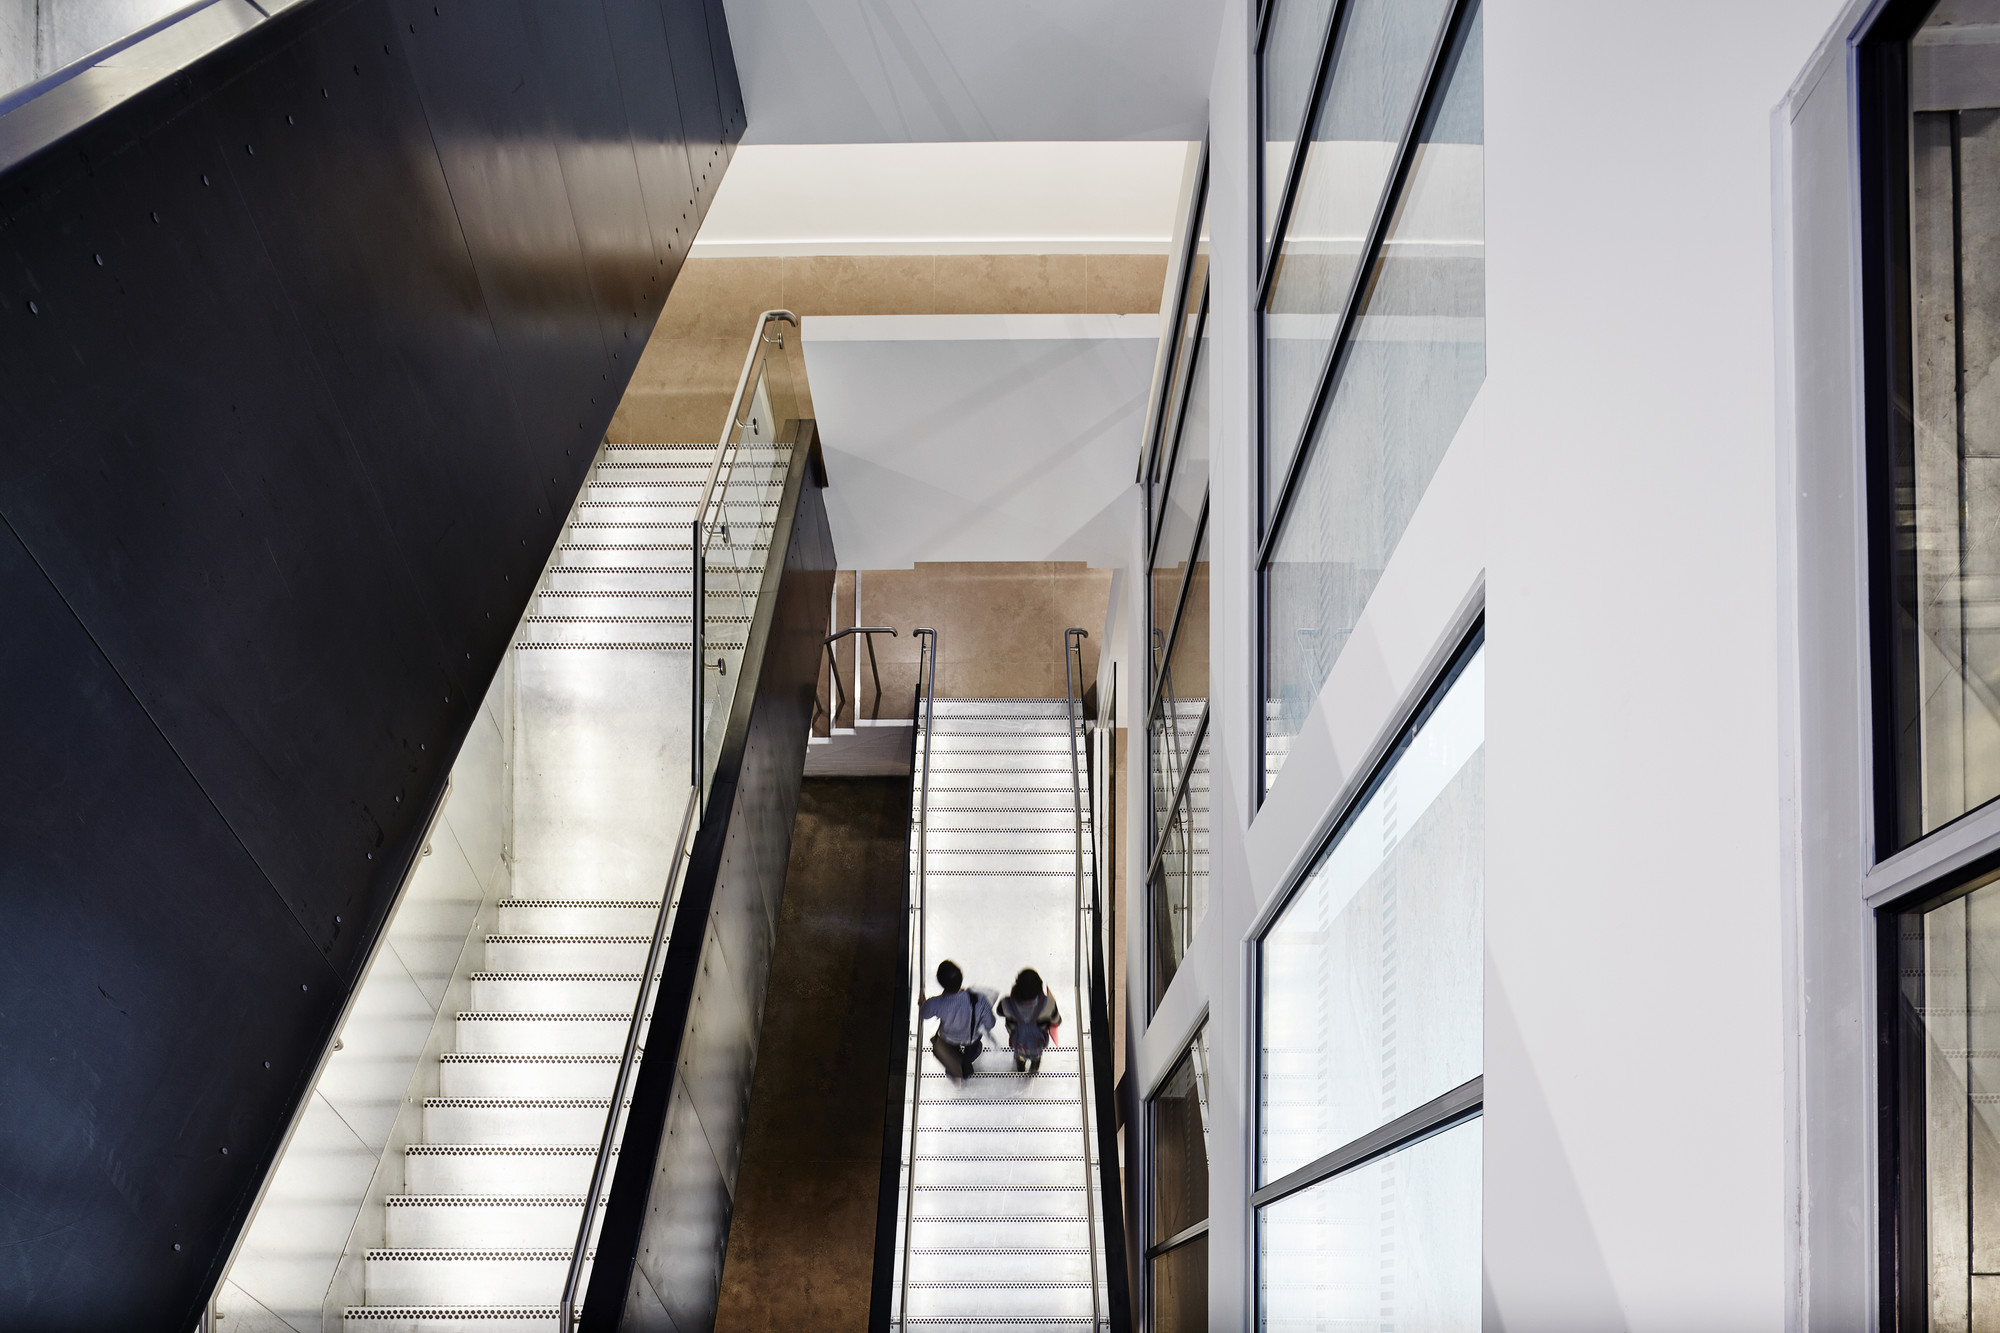 Two students walk down the stairs inside Guntons building